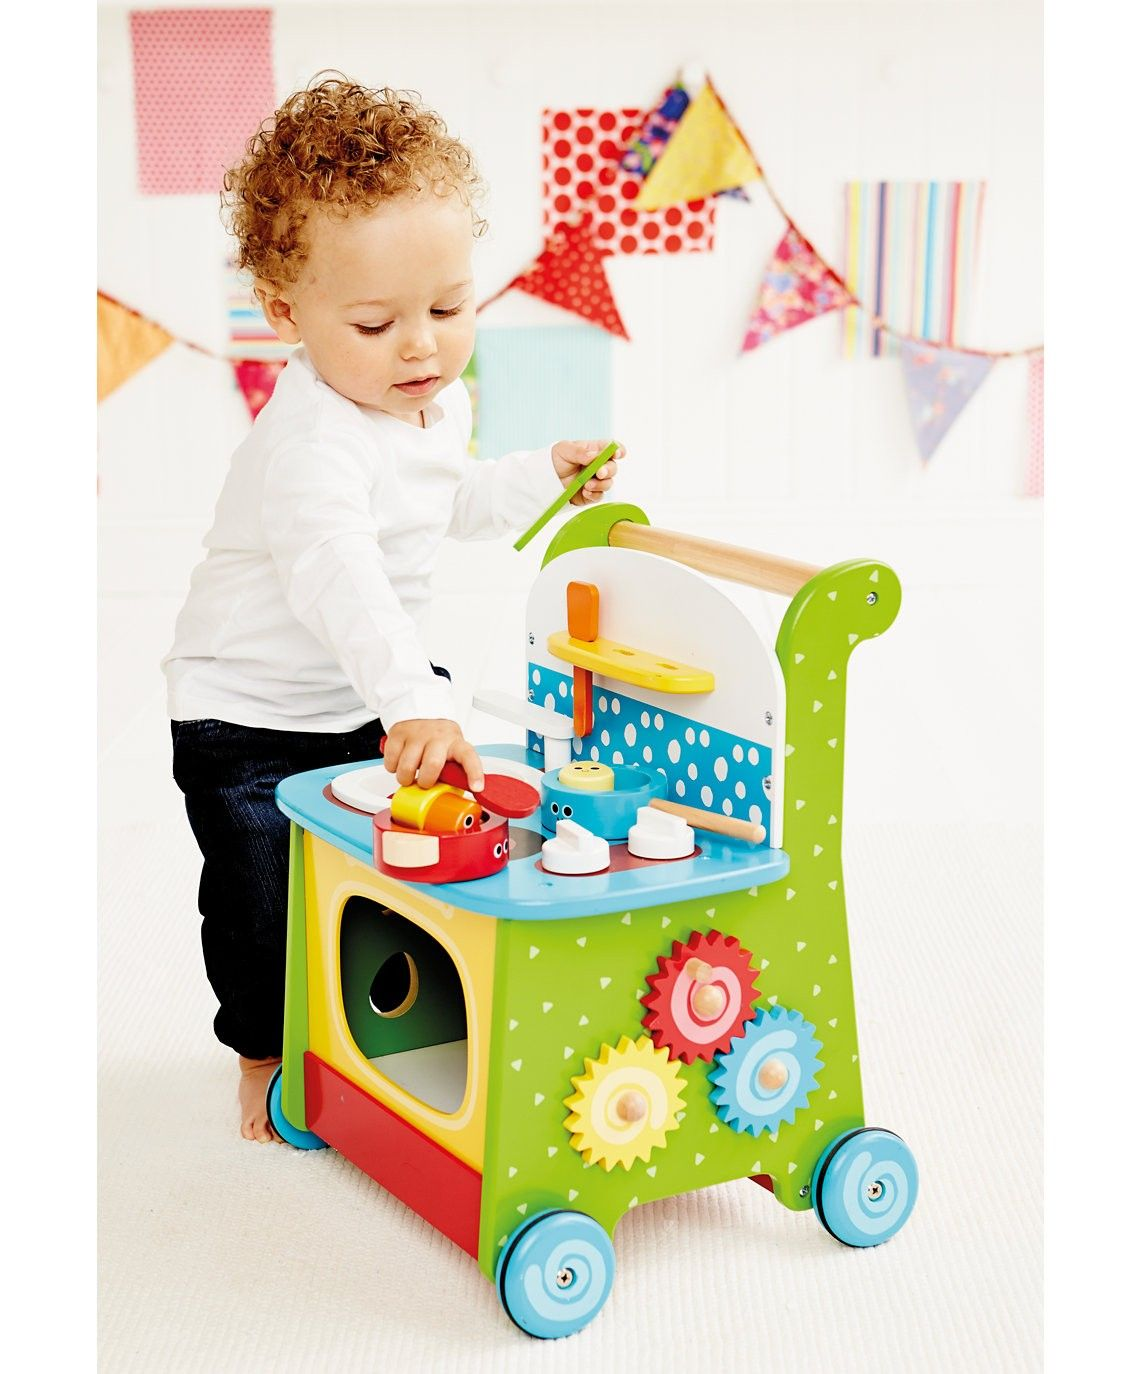 Elc Wooden Activity Kitchen Babycity Pull Along Toys Wooden Toys